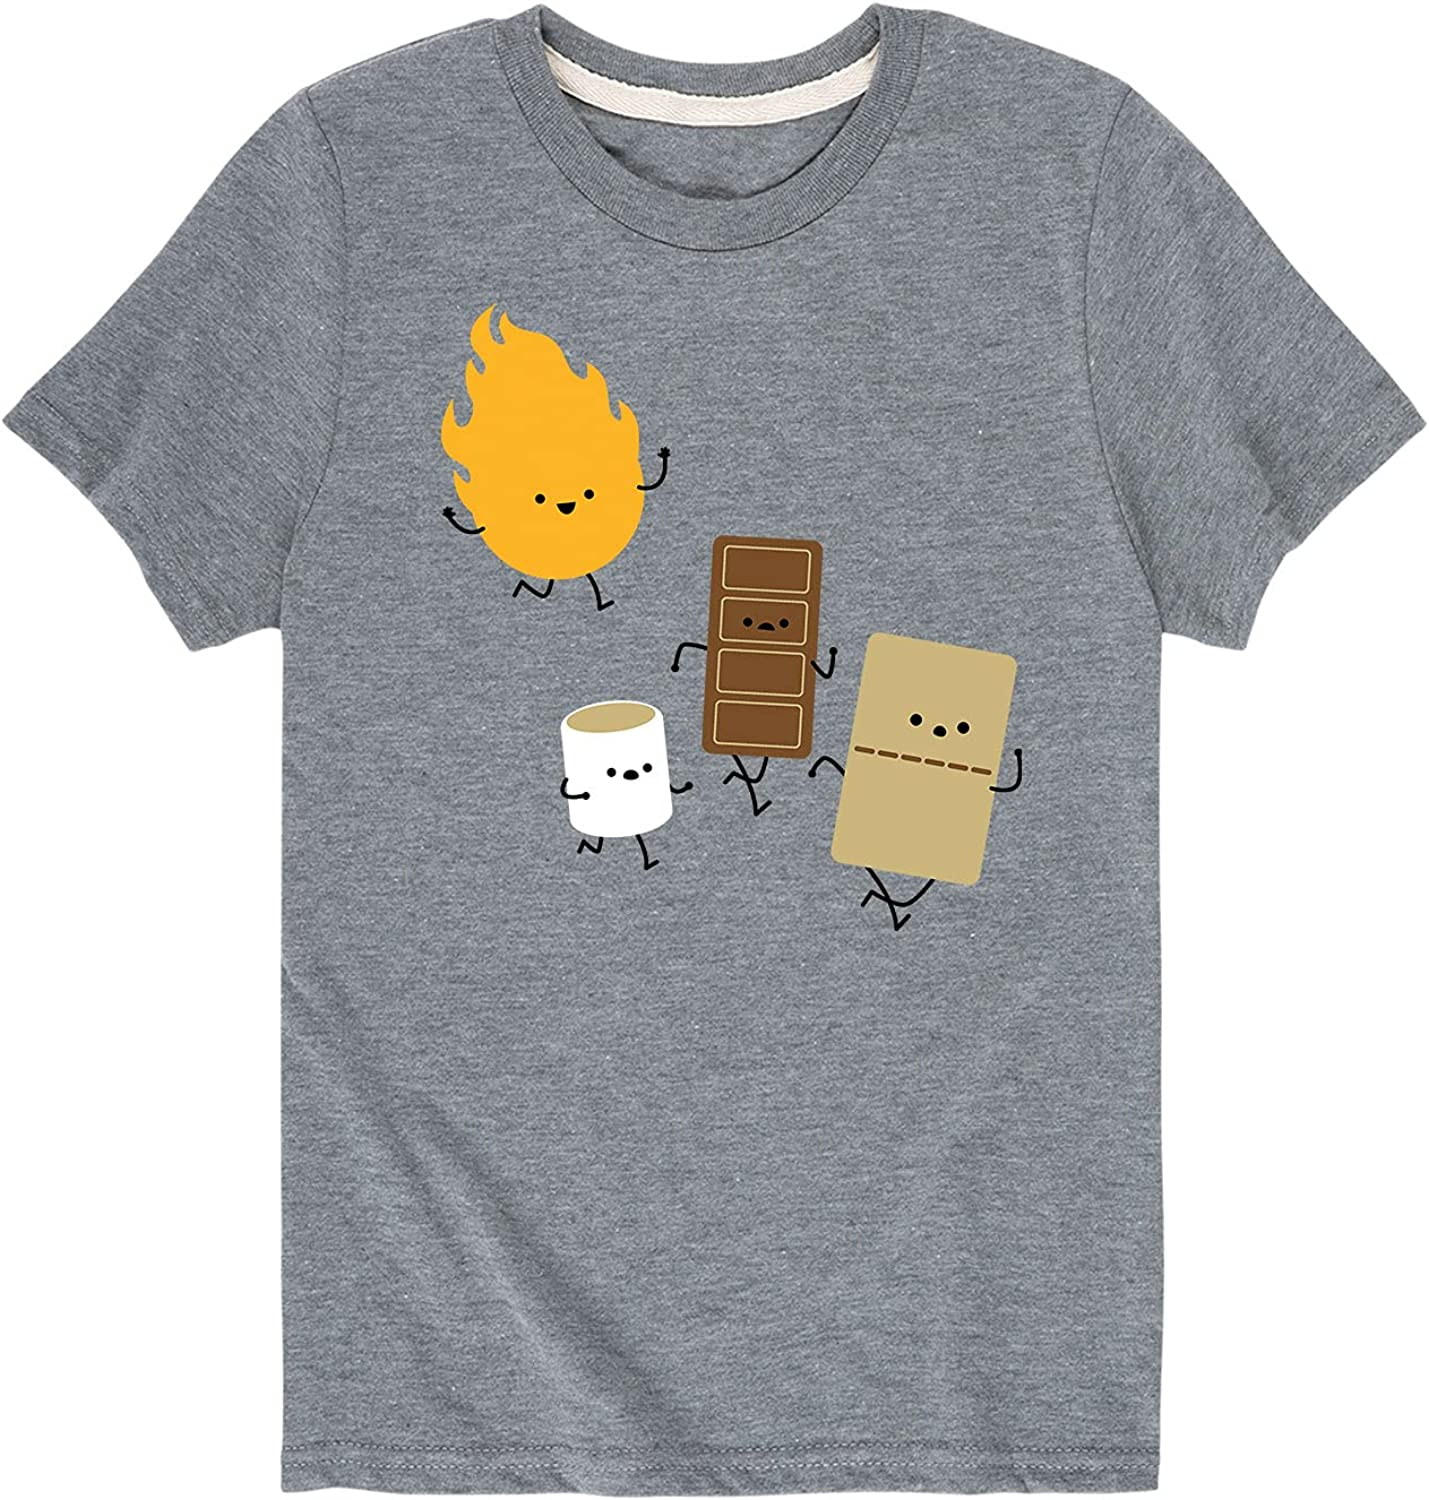 Instant Message Fire and Smore - Toddler and Youth Short Sleeve Graphic T-Shirt